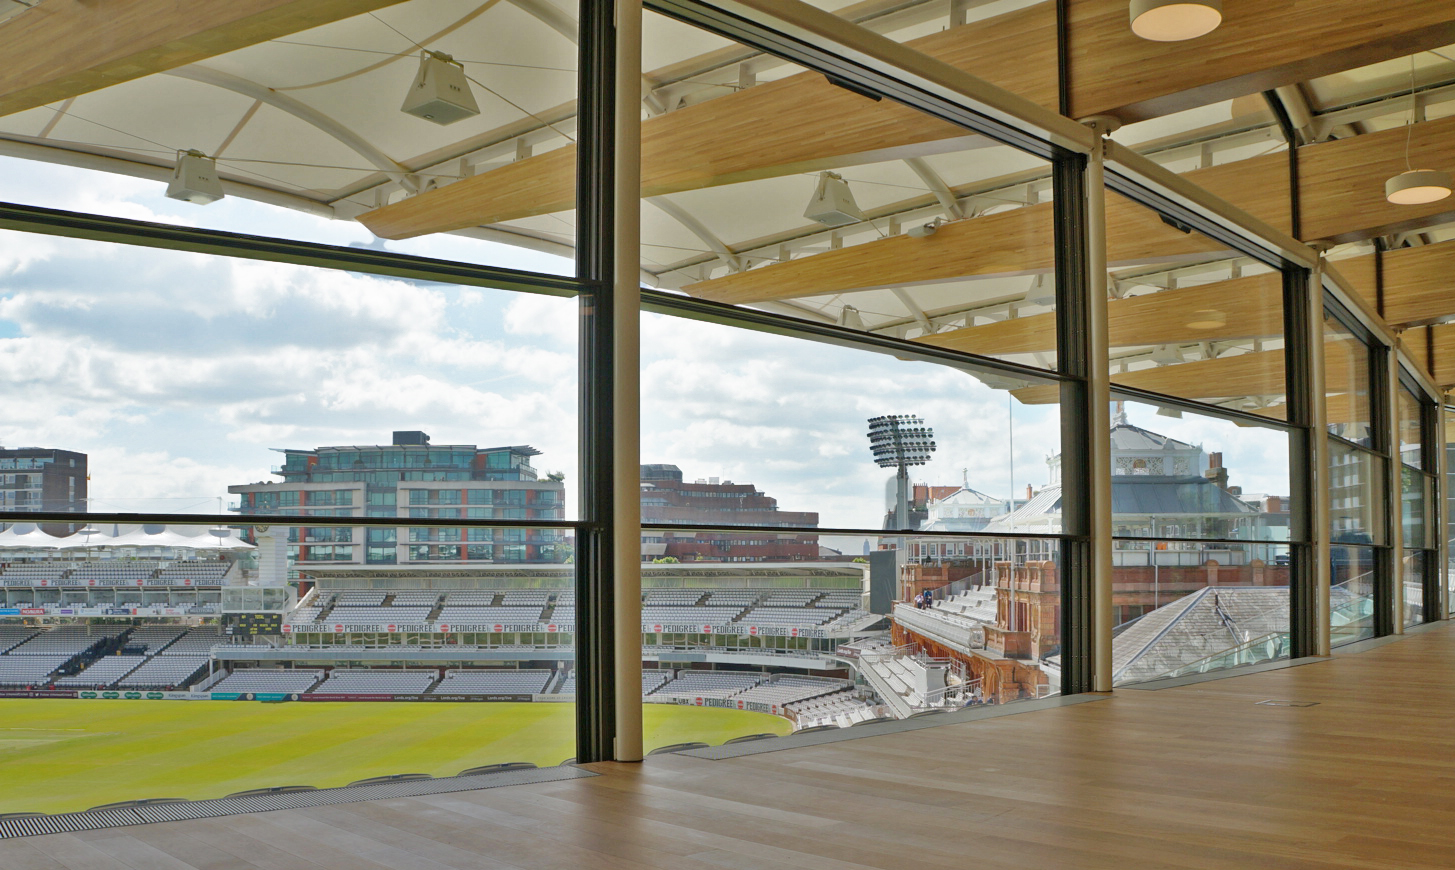 Copy of LORD'S CRICKET GROUND WARNER STAND